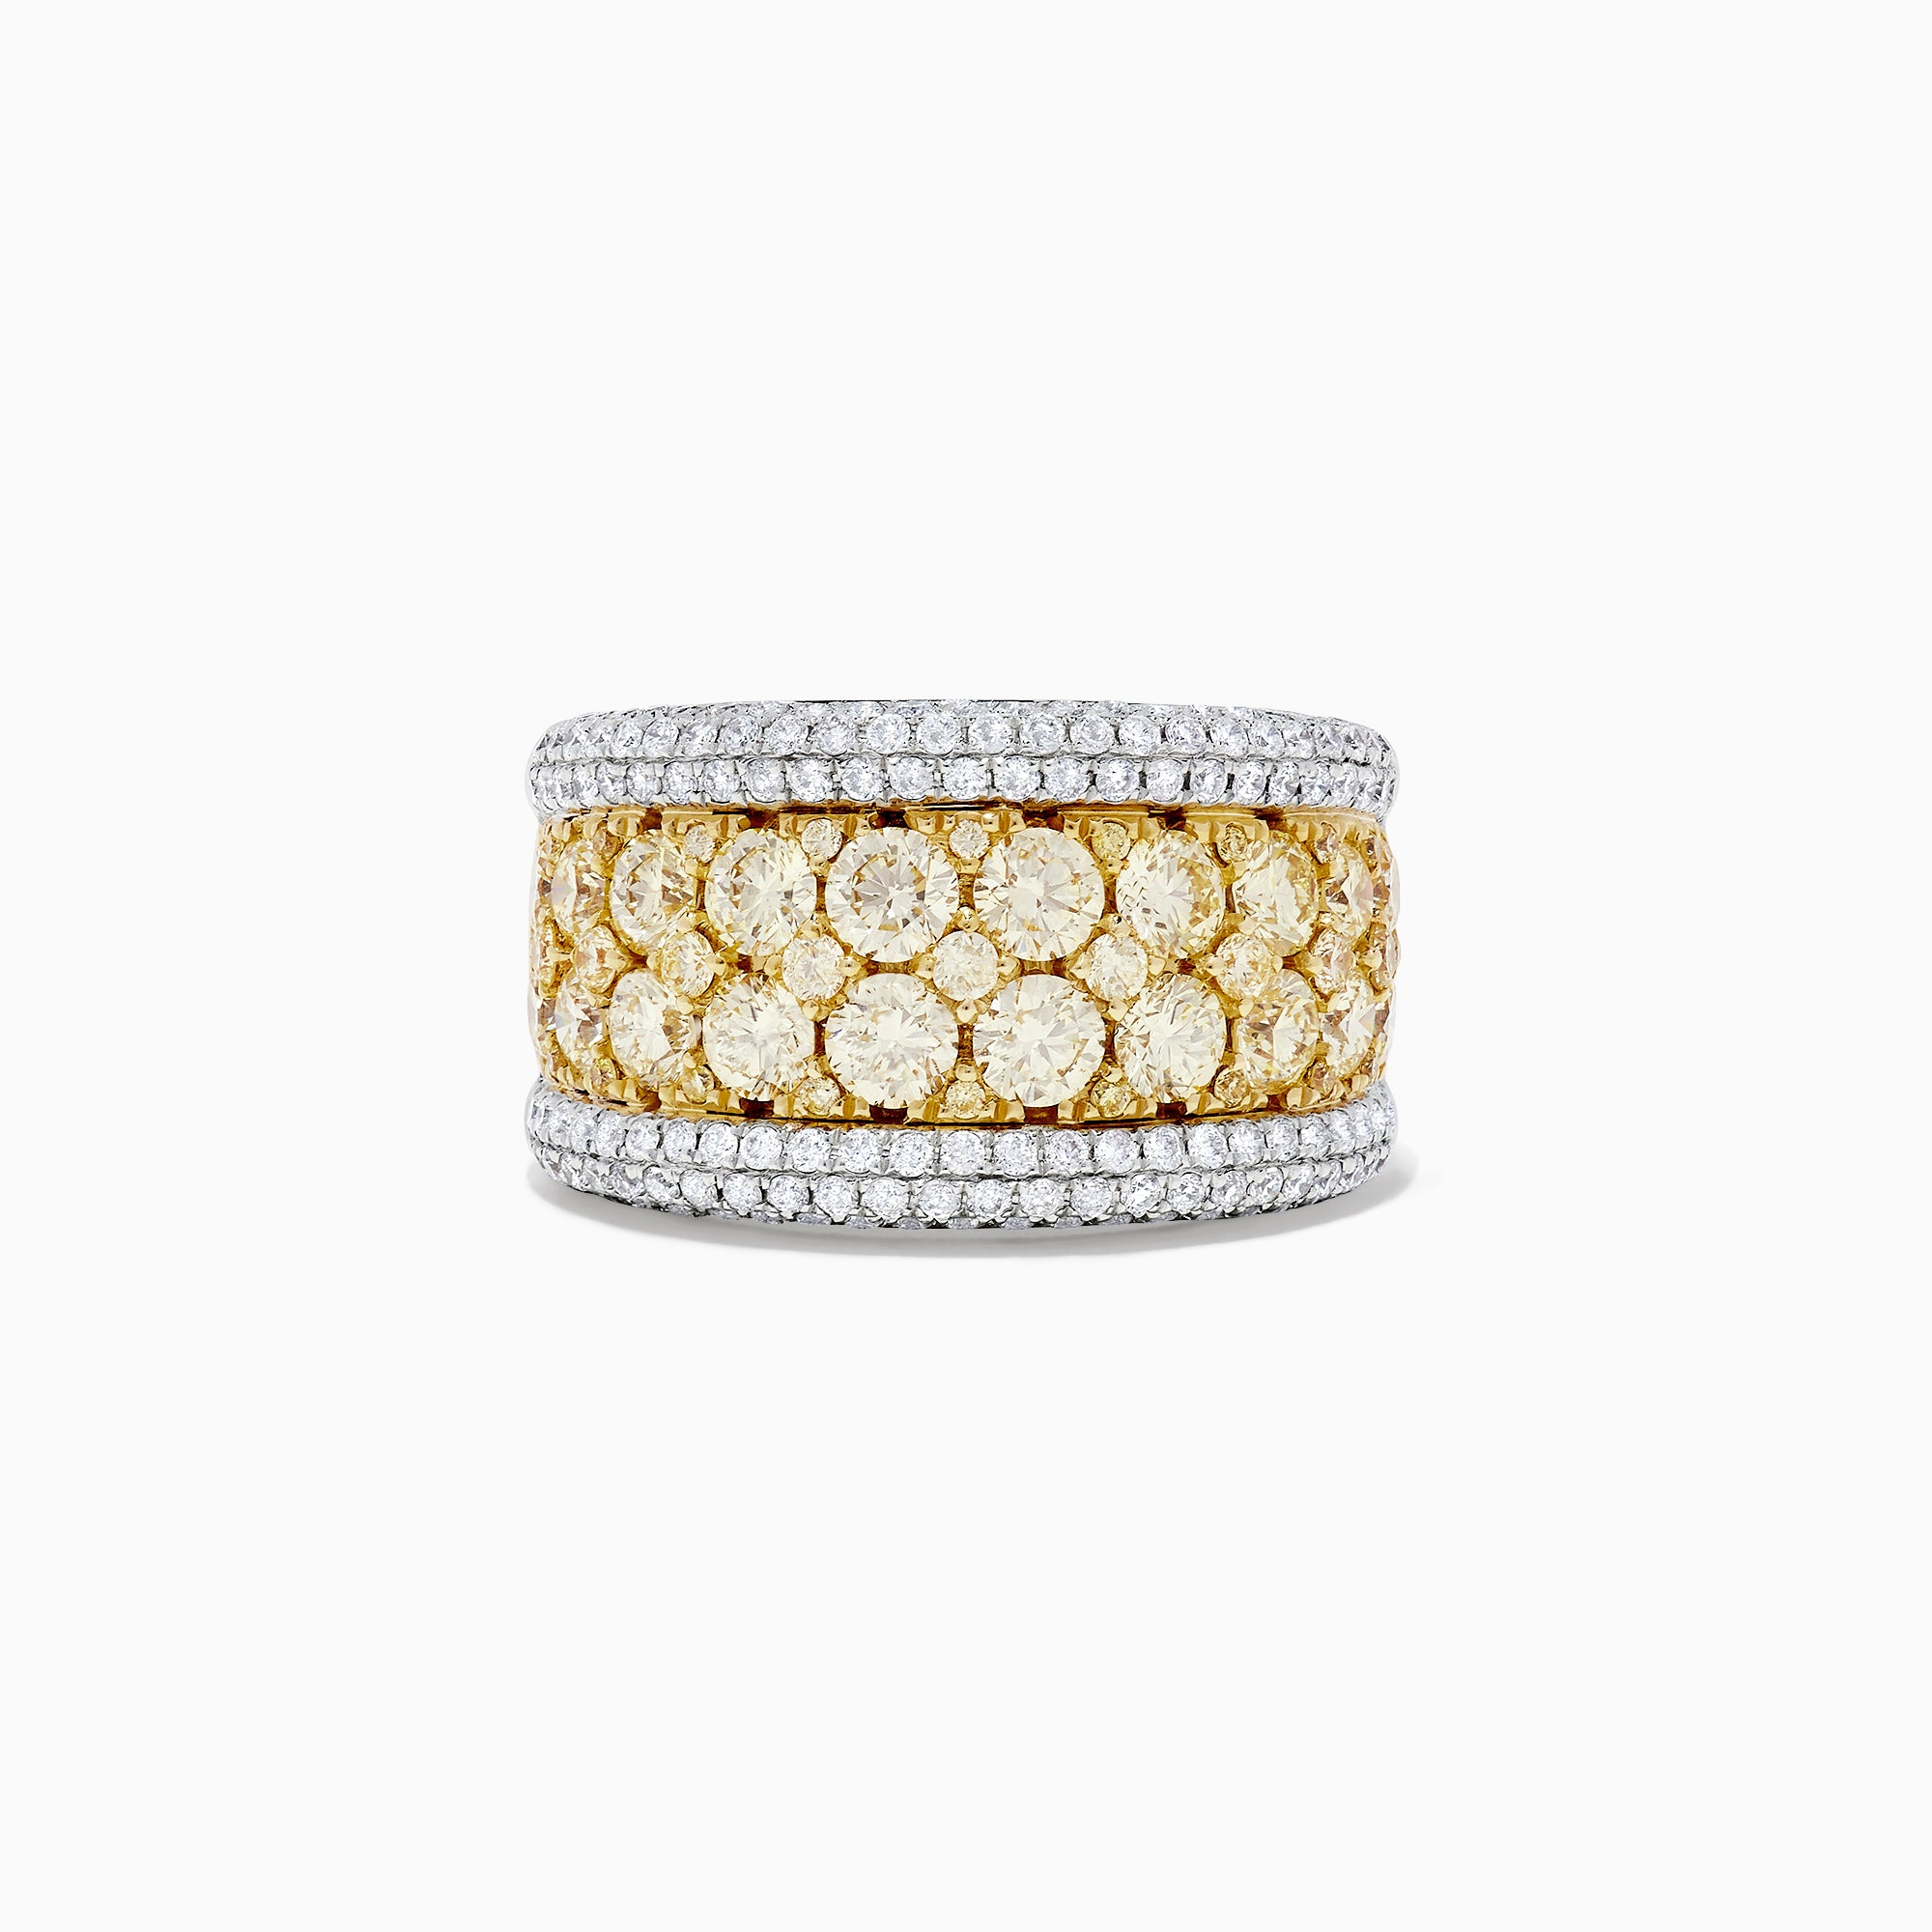 Effy Canare 14K Gold Yellow and White Diamond Cigar Band Ring, 3.82 TCW